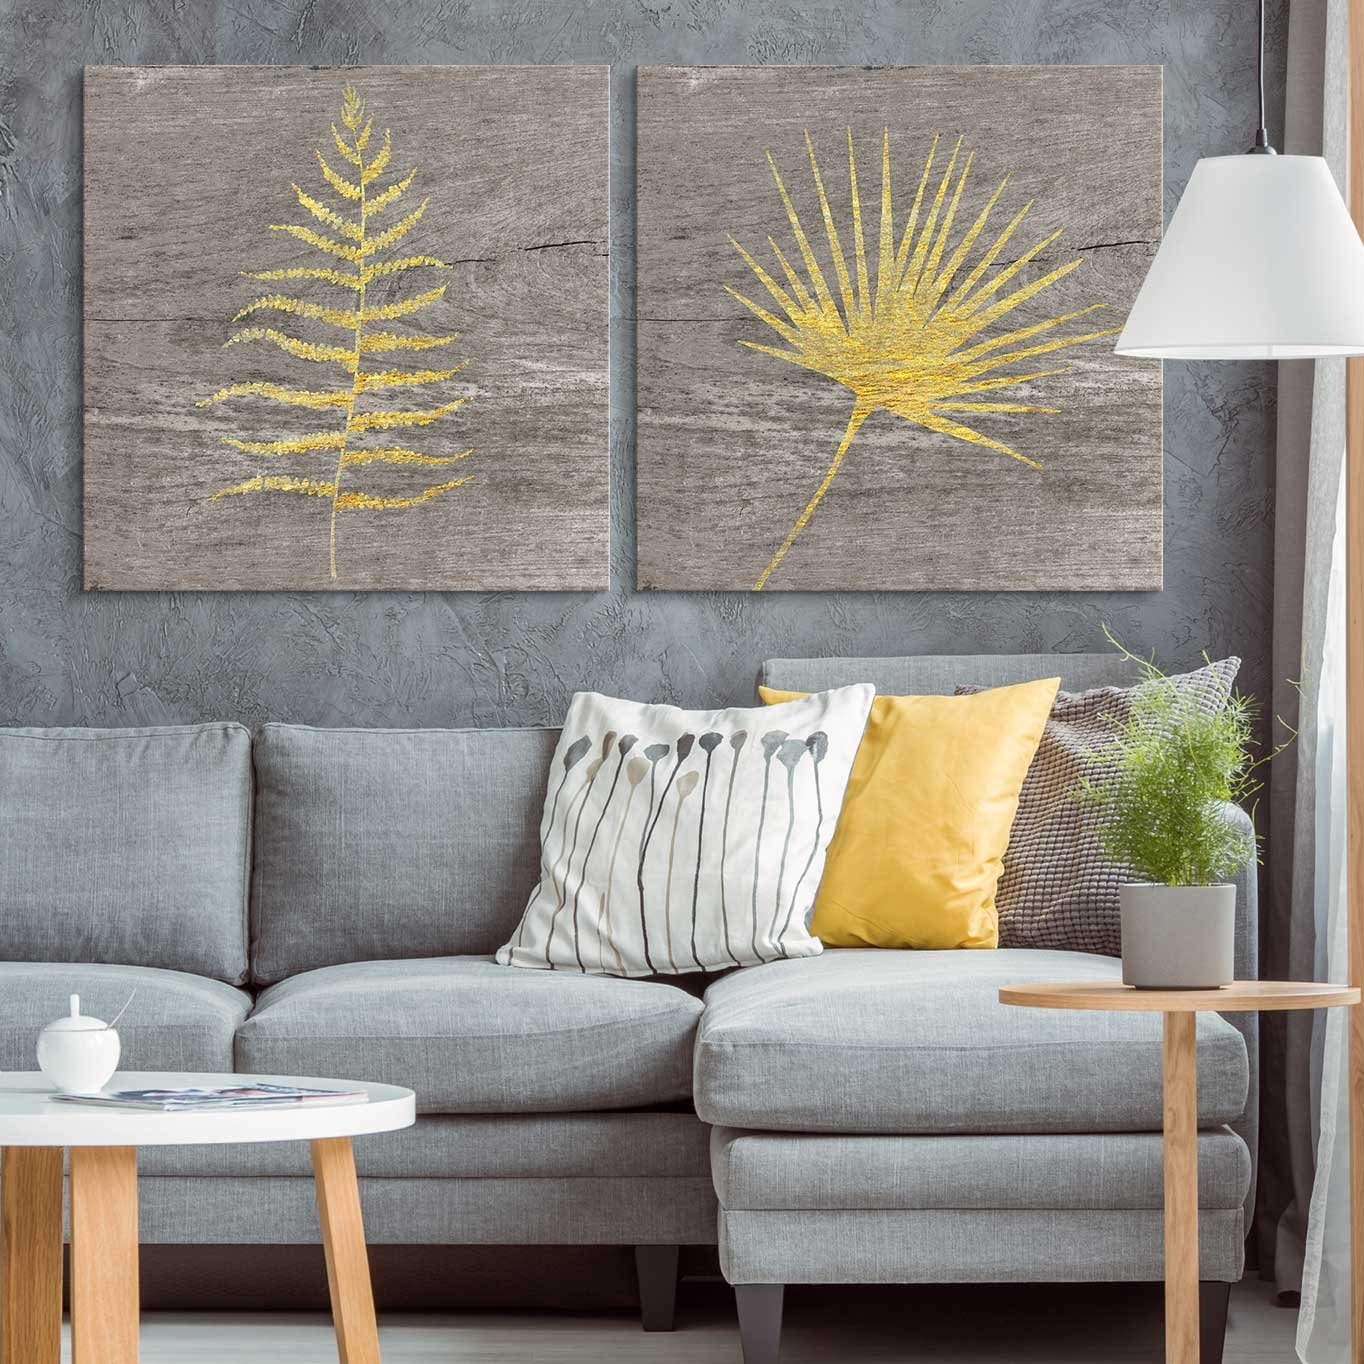 """wall26 - 2 Panel Square Canvas Wall Art - Yellow Ferns Wood Effect Canvas - Giclee Print Gallery Wrap Modern Home Decor Ready to Hang - 24""""x24"""" x 2 Panels"""